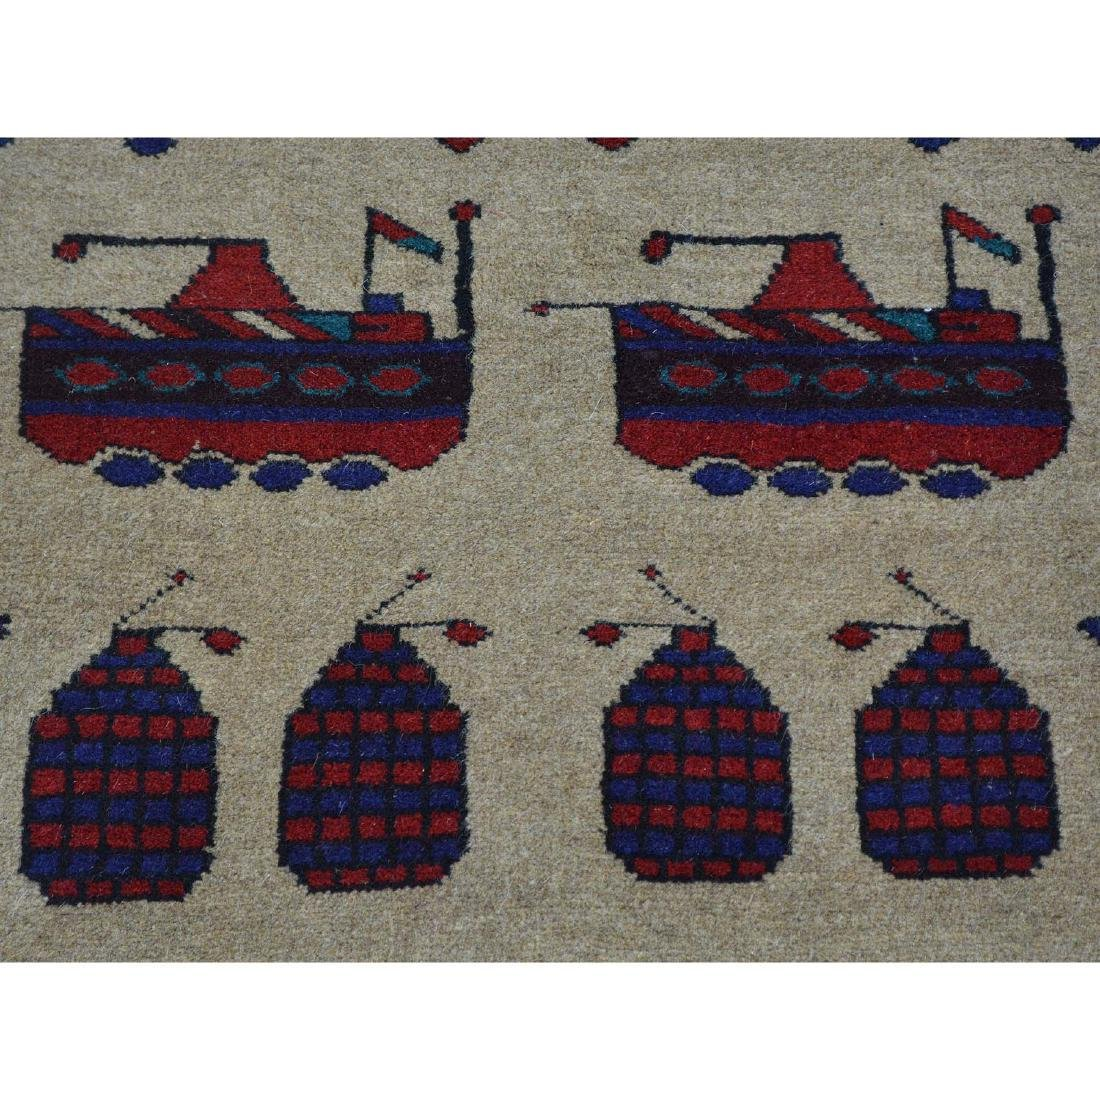 Hand Knotted Afghan Baluch War Tank Grenade Rug 2.9x4.6 - 4